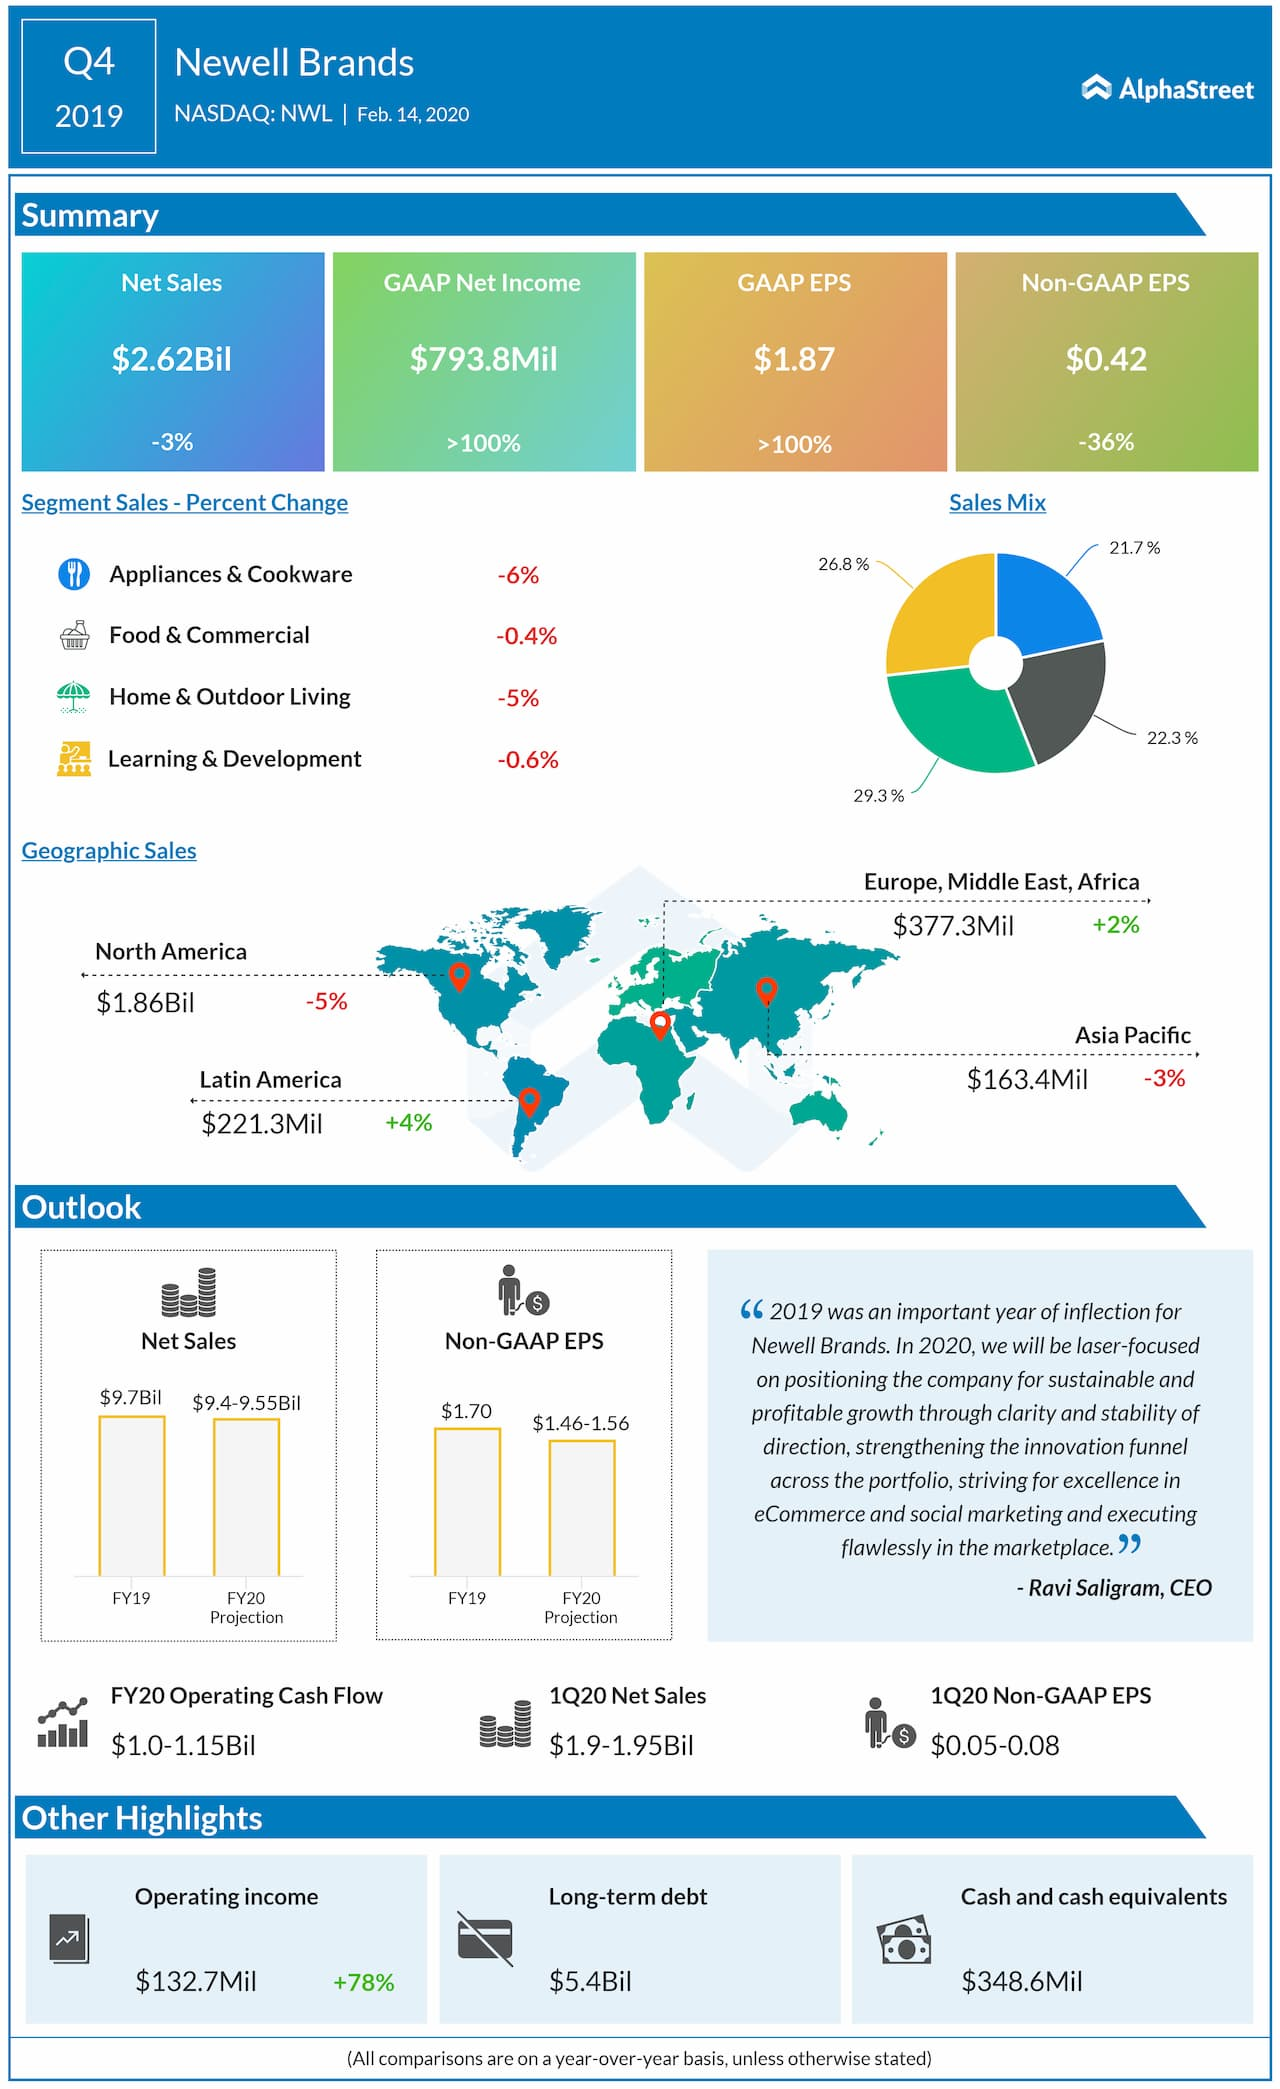 Newell Brands (NWL) Q4 2019 earnings snapshot